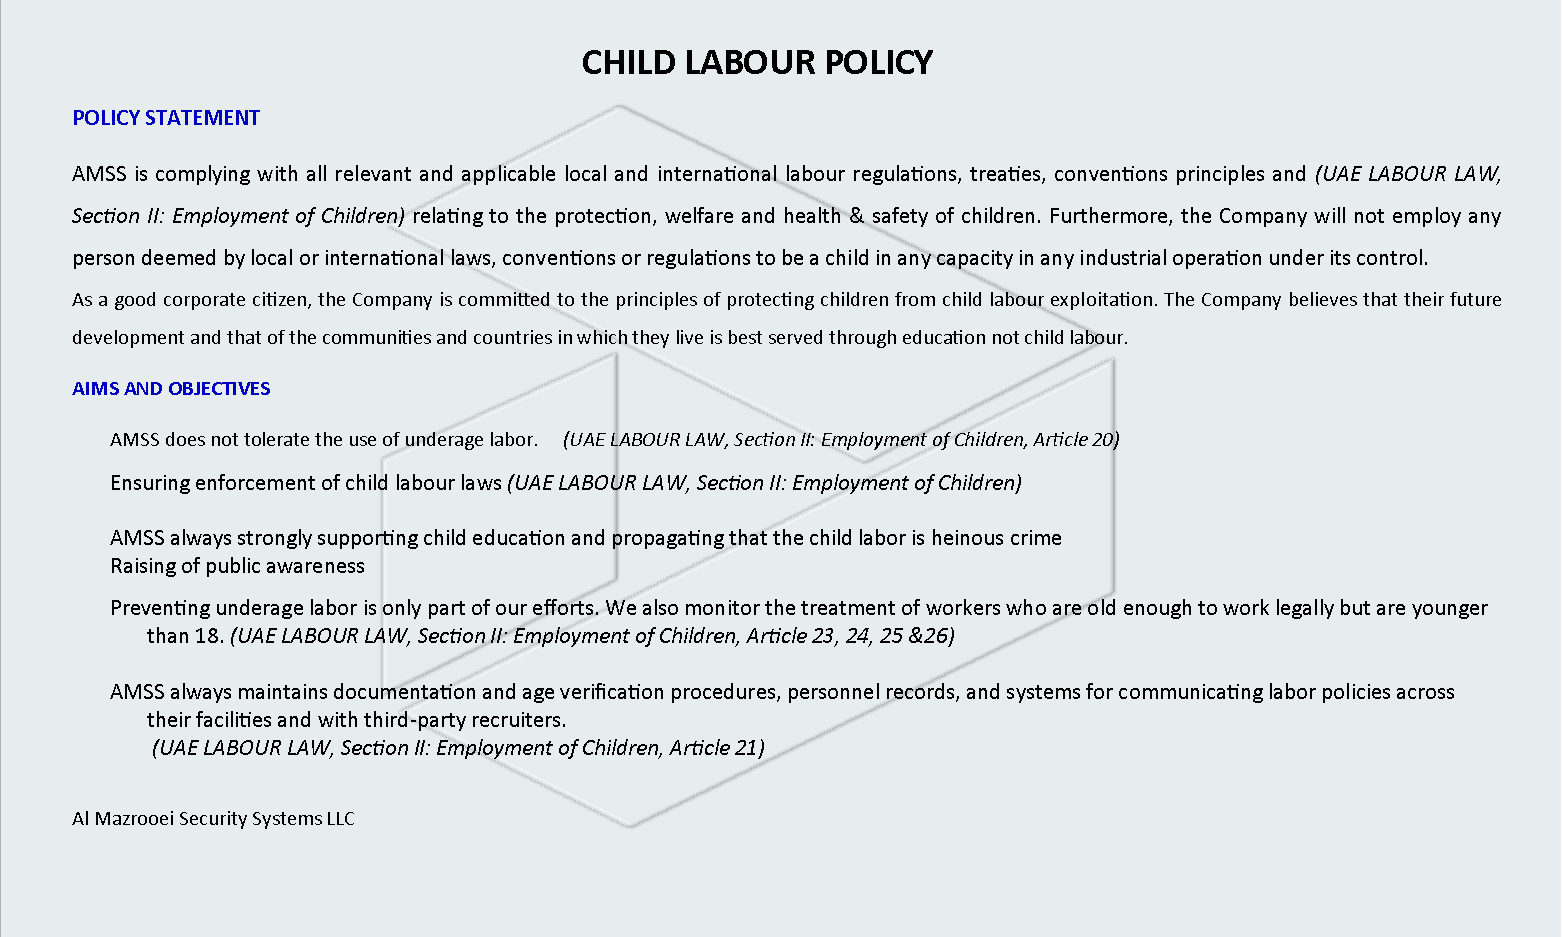 child labor laws thesis statement An essay or paper on child labor during industrial revolution the industrial revolution was one of the hardest times in american history with these hard times brought pollution, poverty, and prejudice.